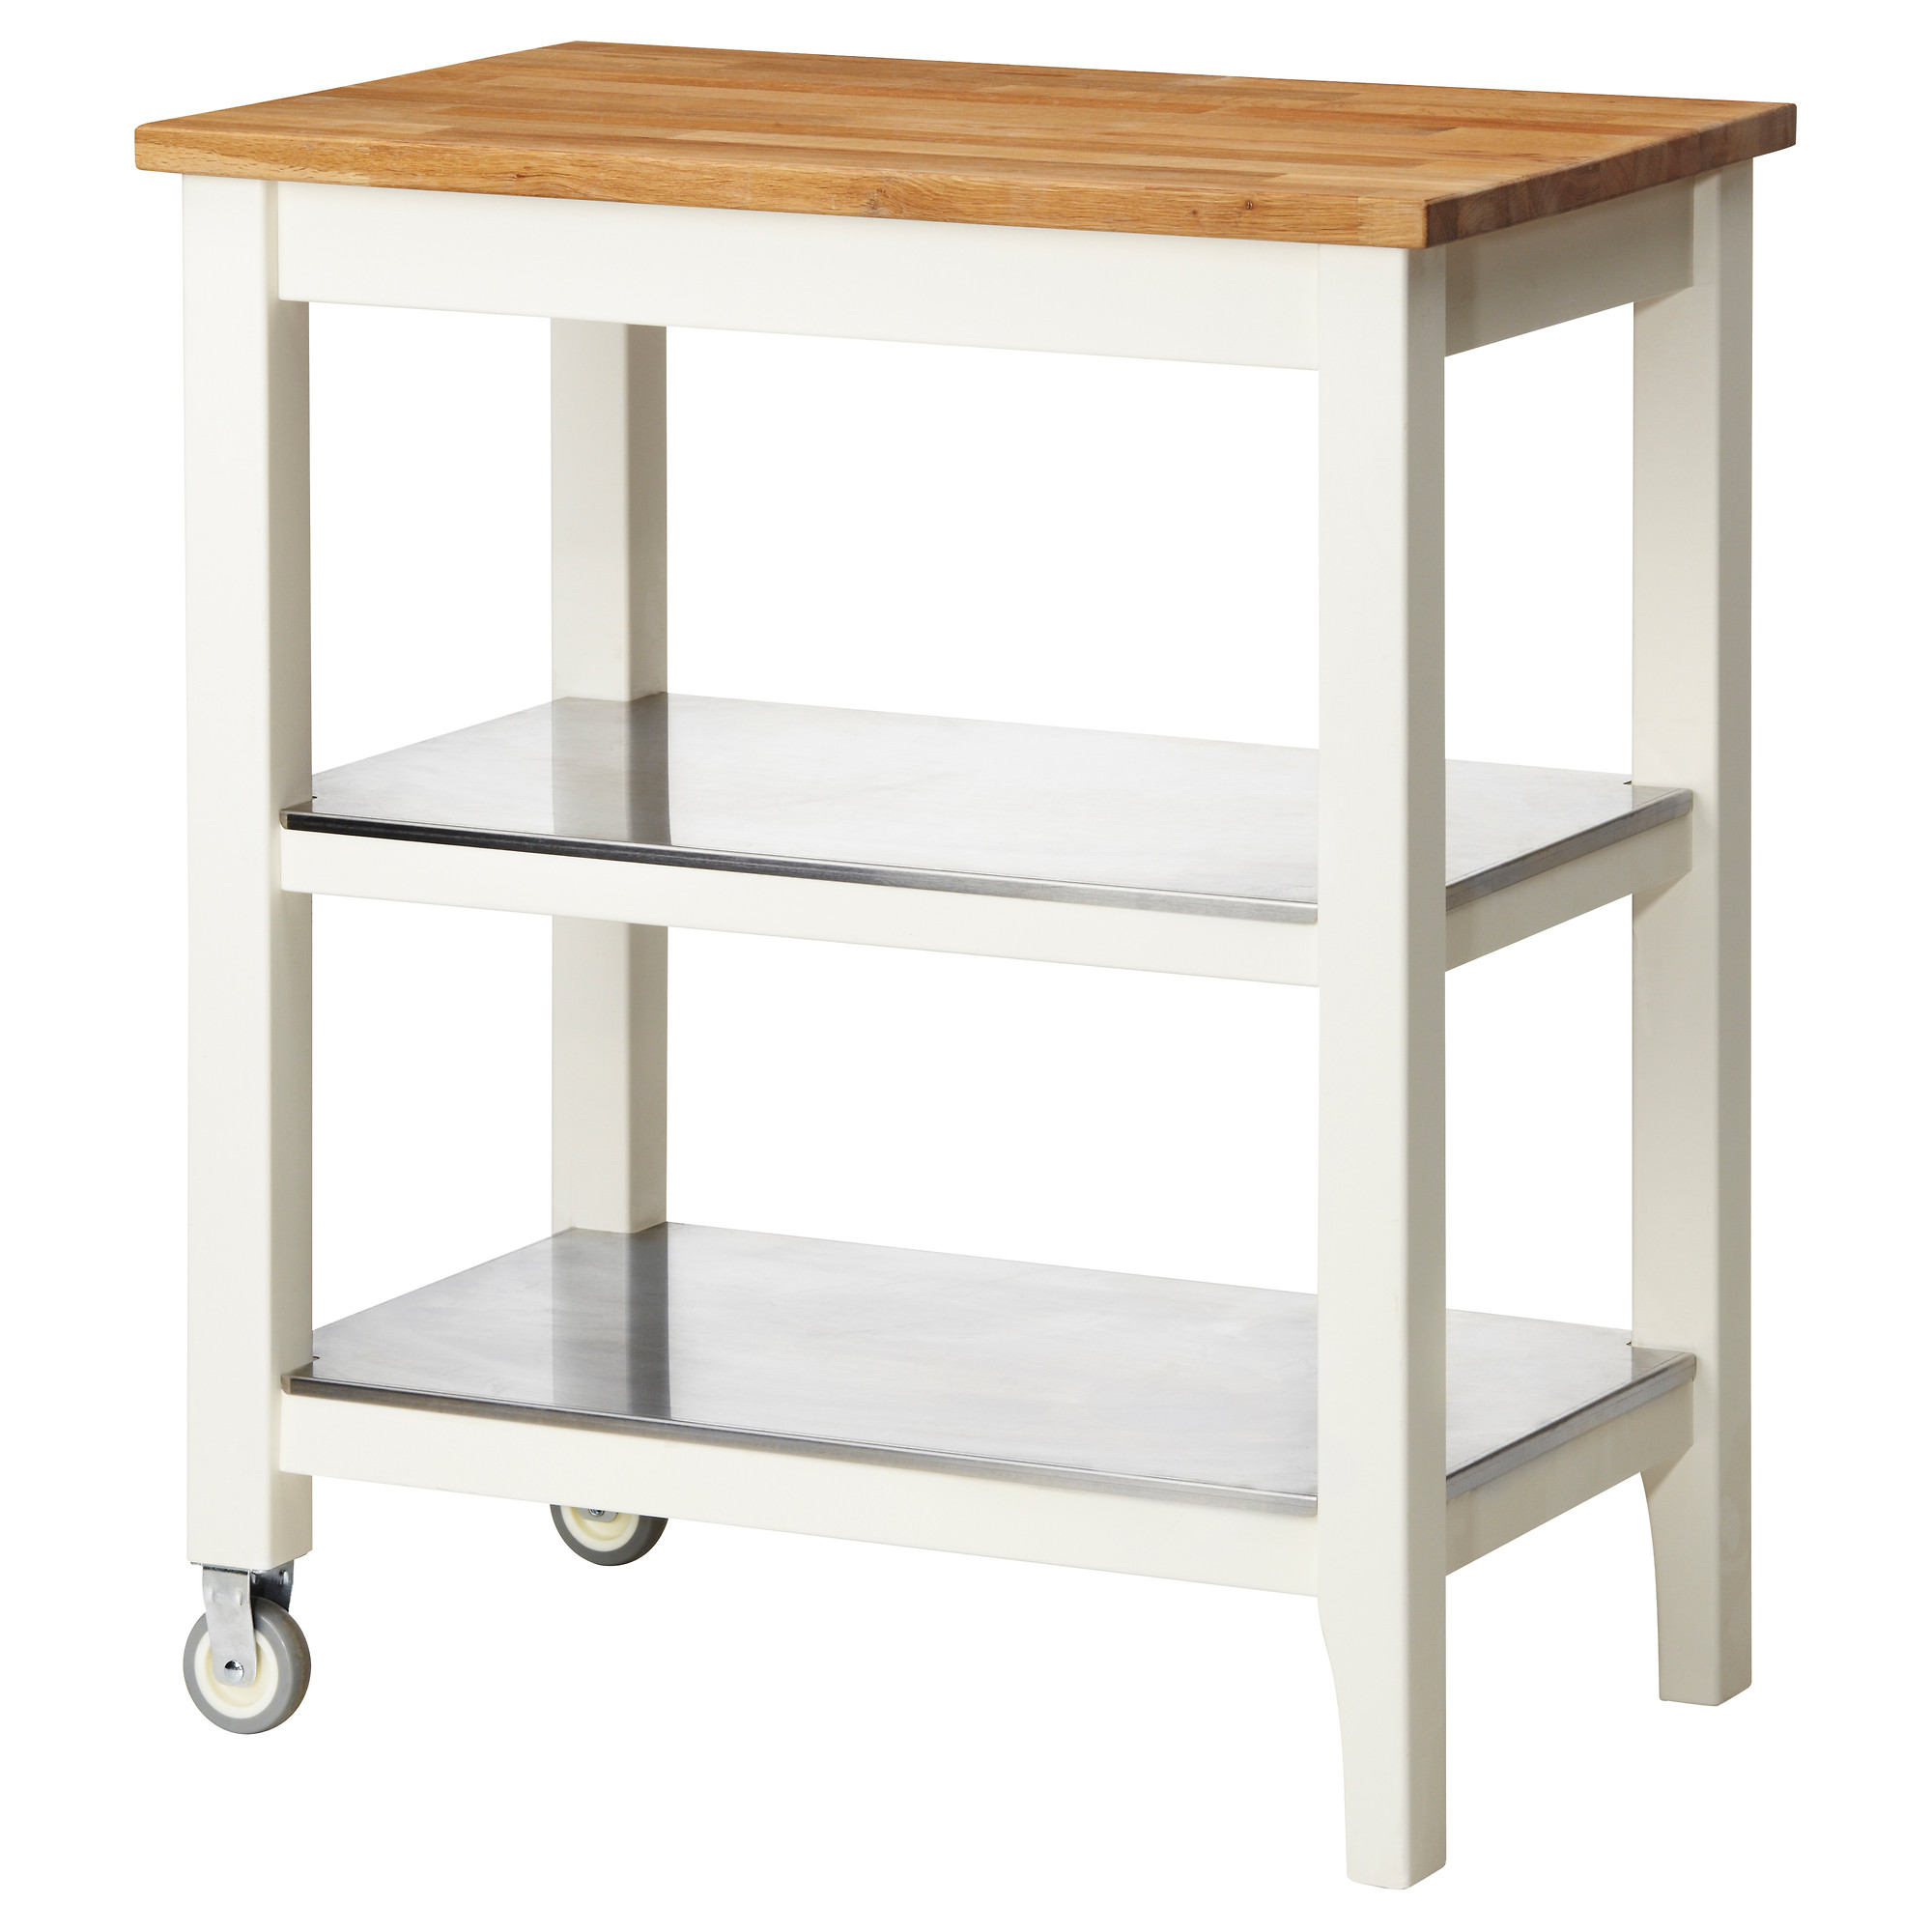 drawer shelves of on in com image rolling large with movable from art kitchen islands wheels portable kohls furniture bar stand cheap design size carts ideas lowes metal cart walmart sophisticated bobs ikea microwave full islan price alone amazon island storage trolley